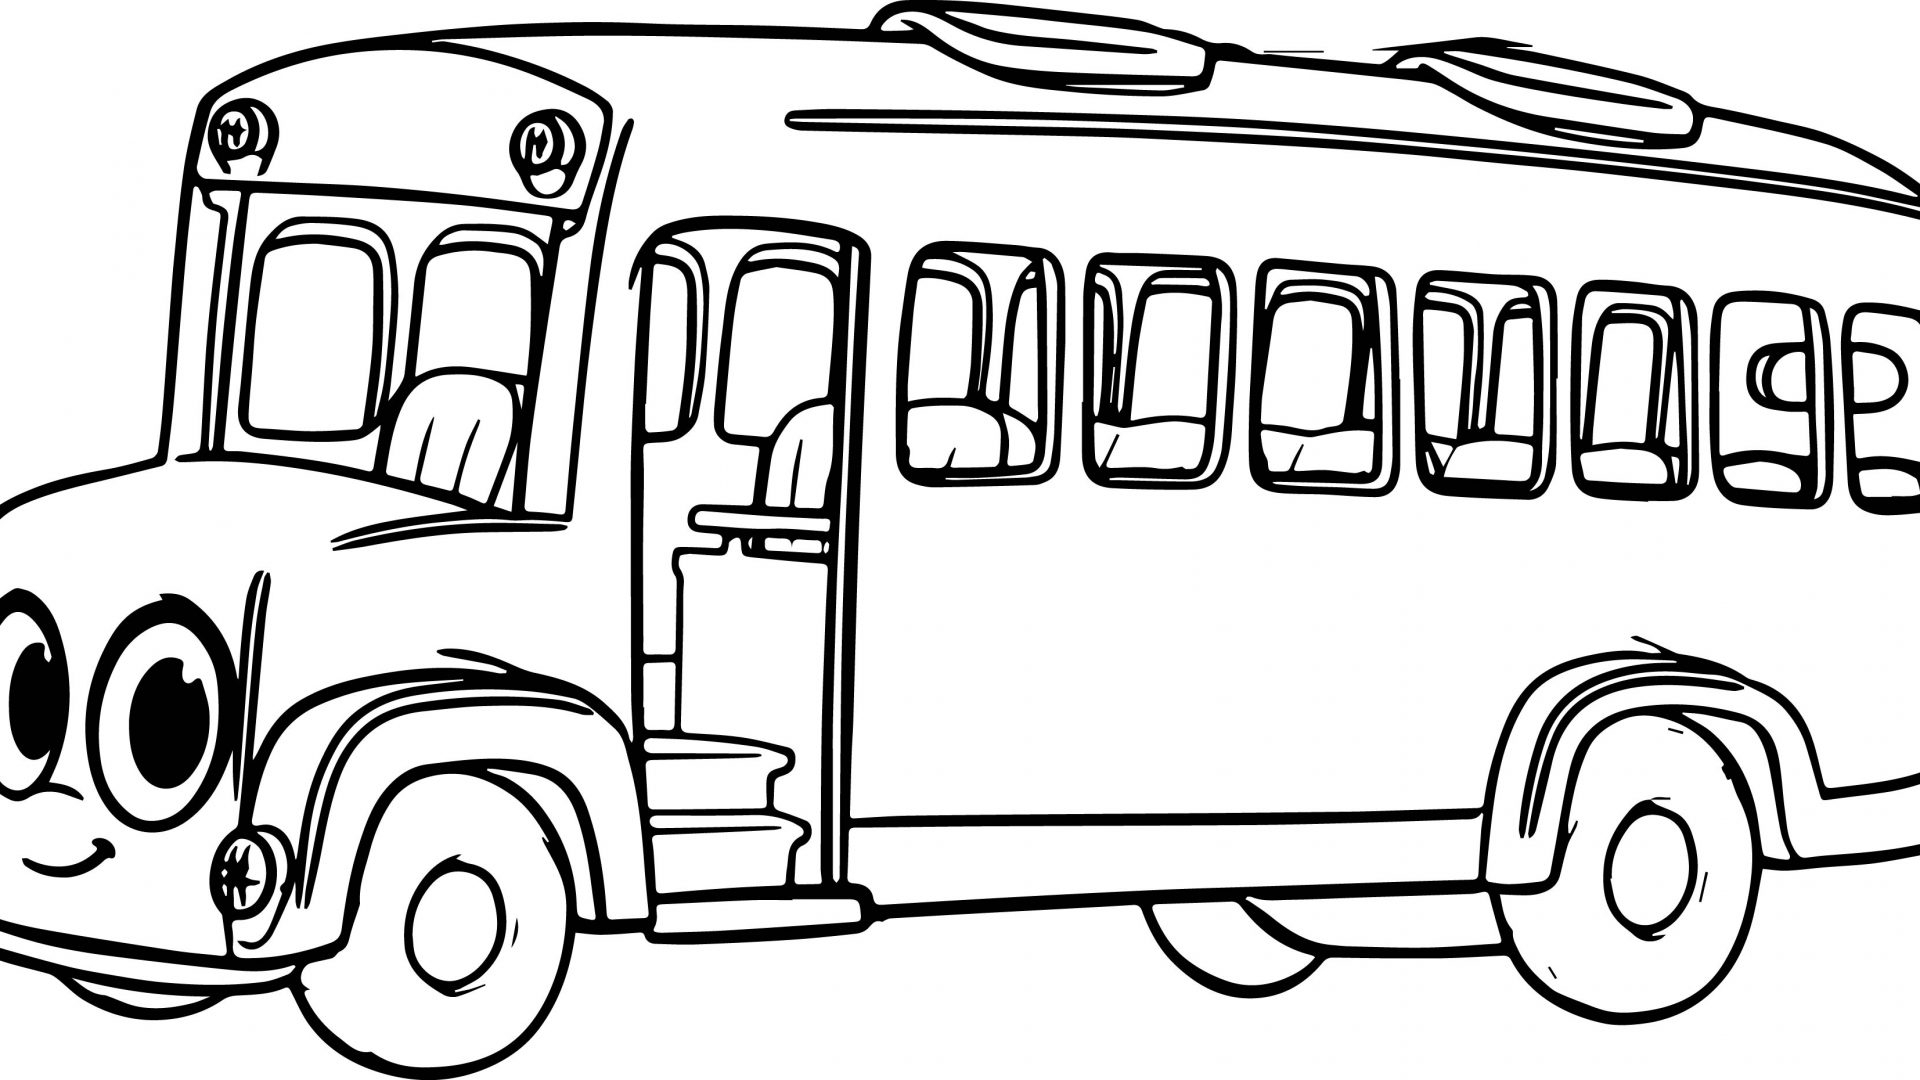 1920x1080 Fresh School Bus Coloring Page Free Printable Pages In Auto Market